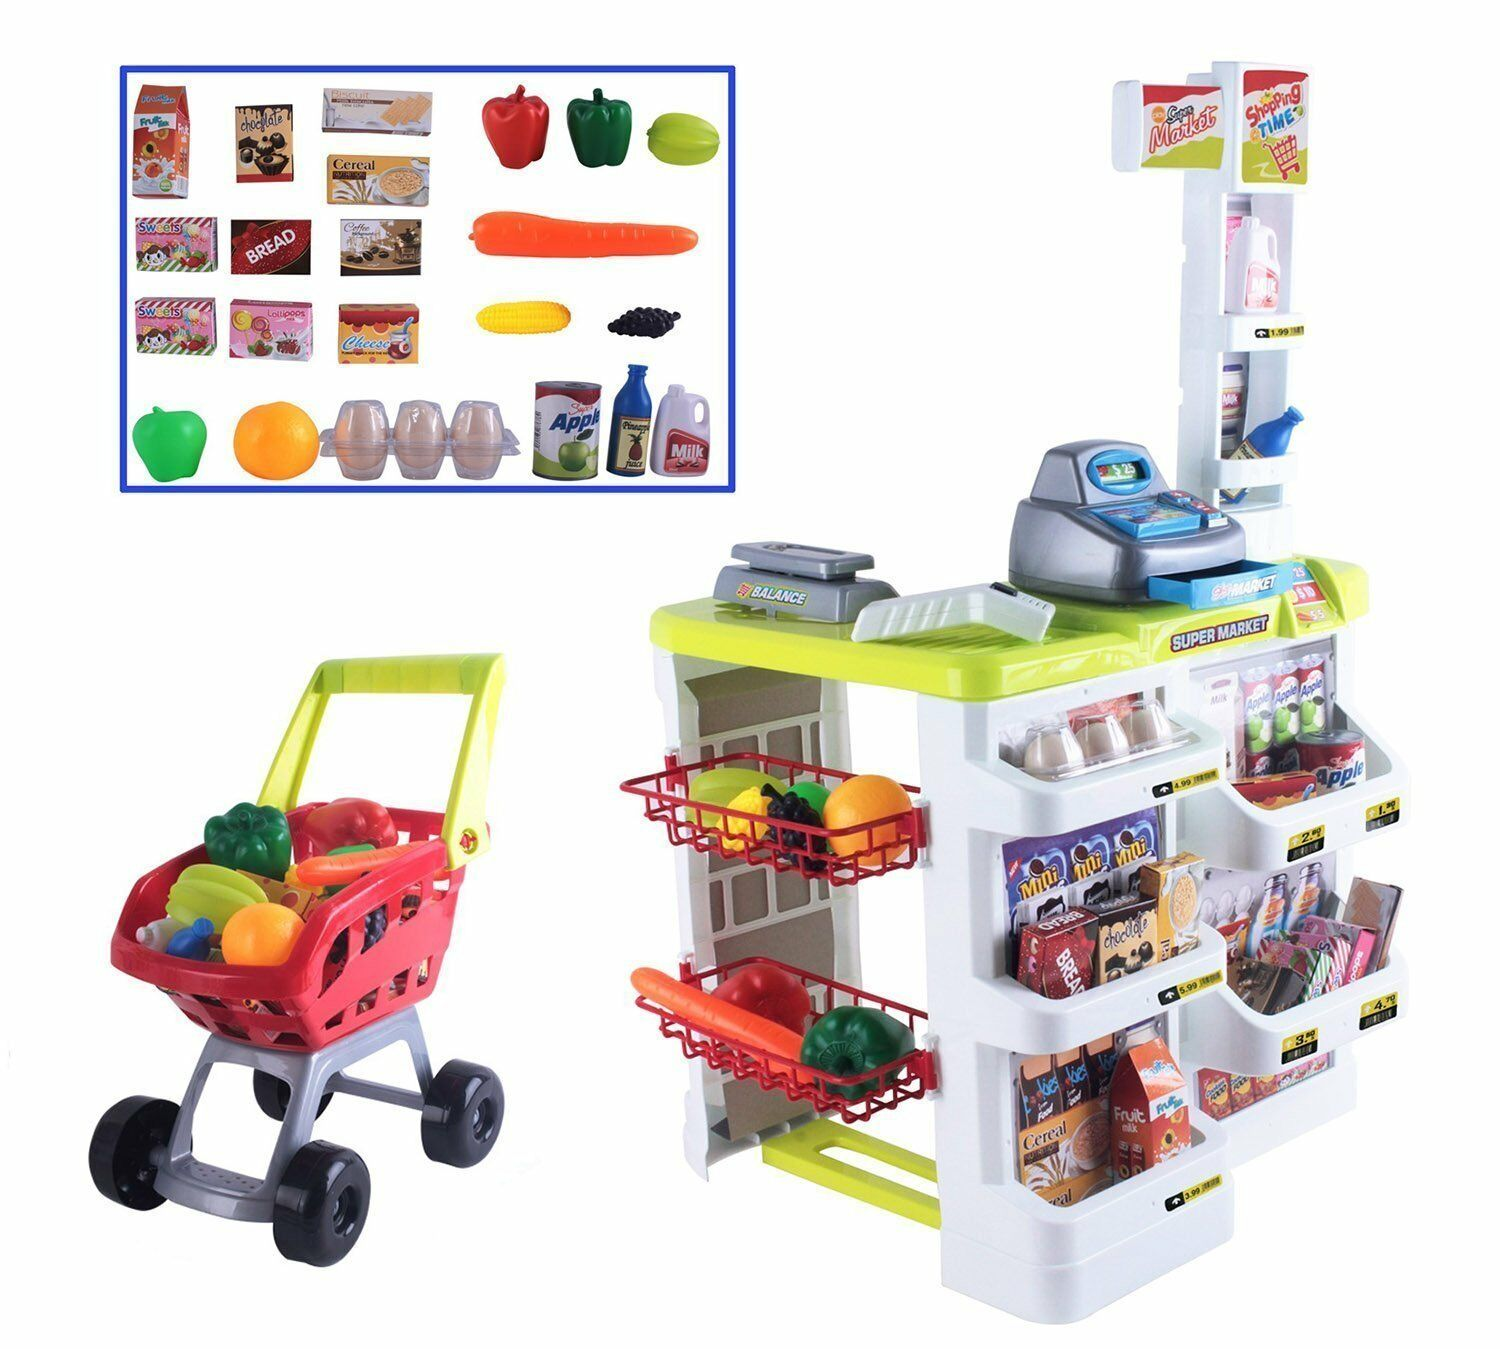 Supermarket Shop Play Set Ideal for Christmas